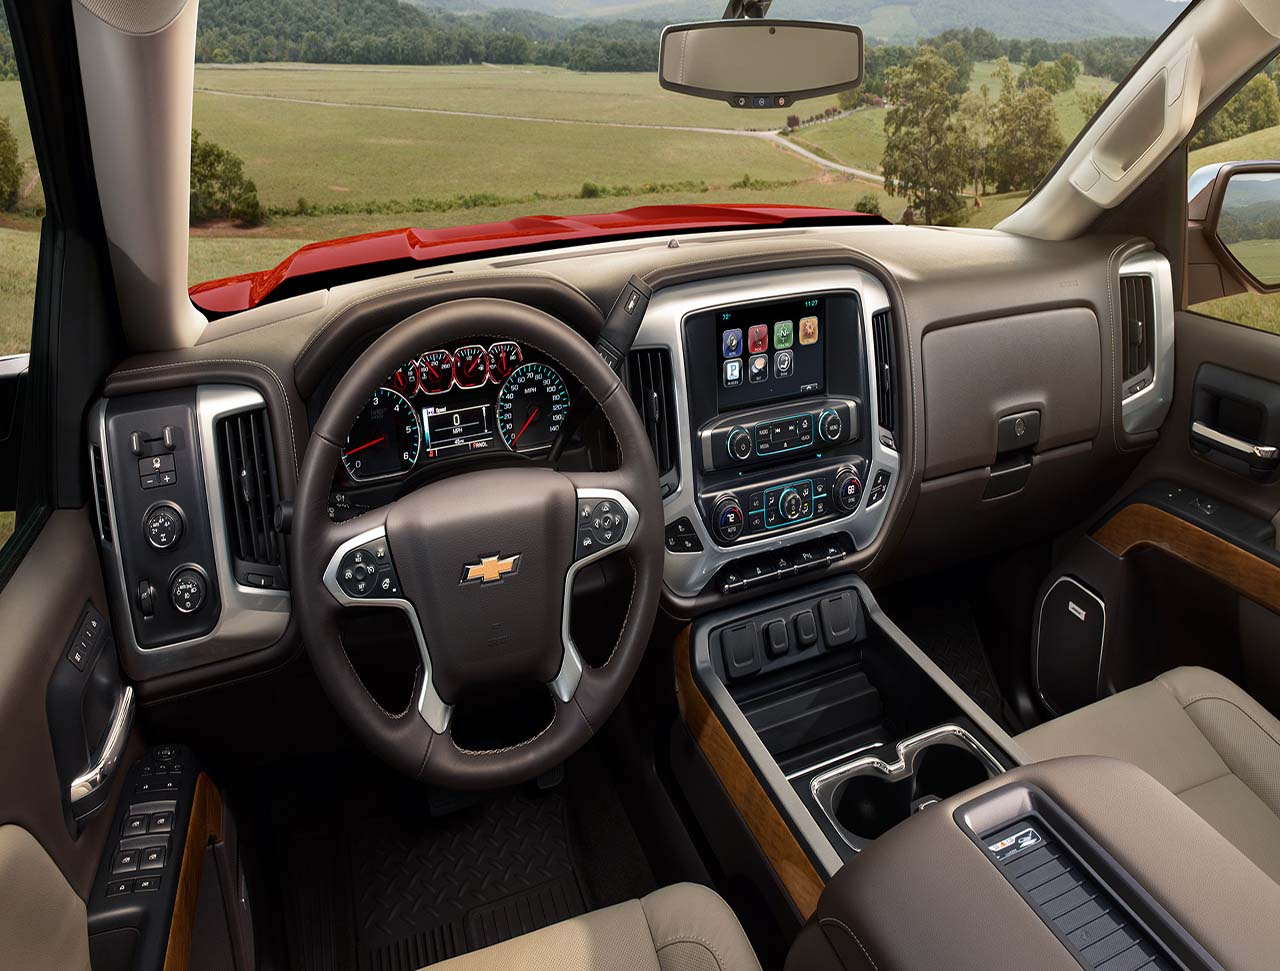 2017 Chevrolet Silverado 1500 In Baton Rouge All Star Chevrolet